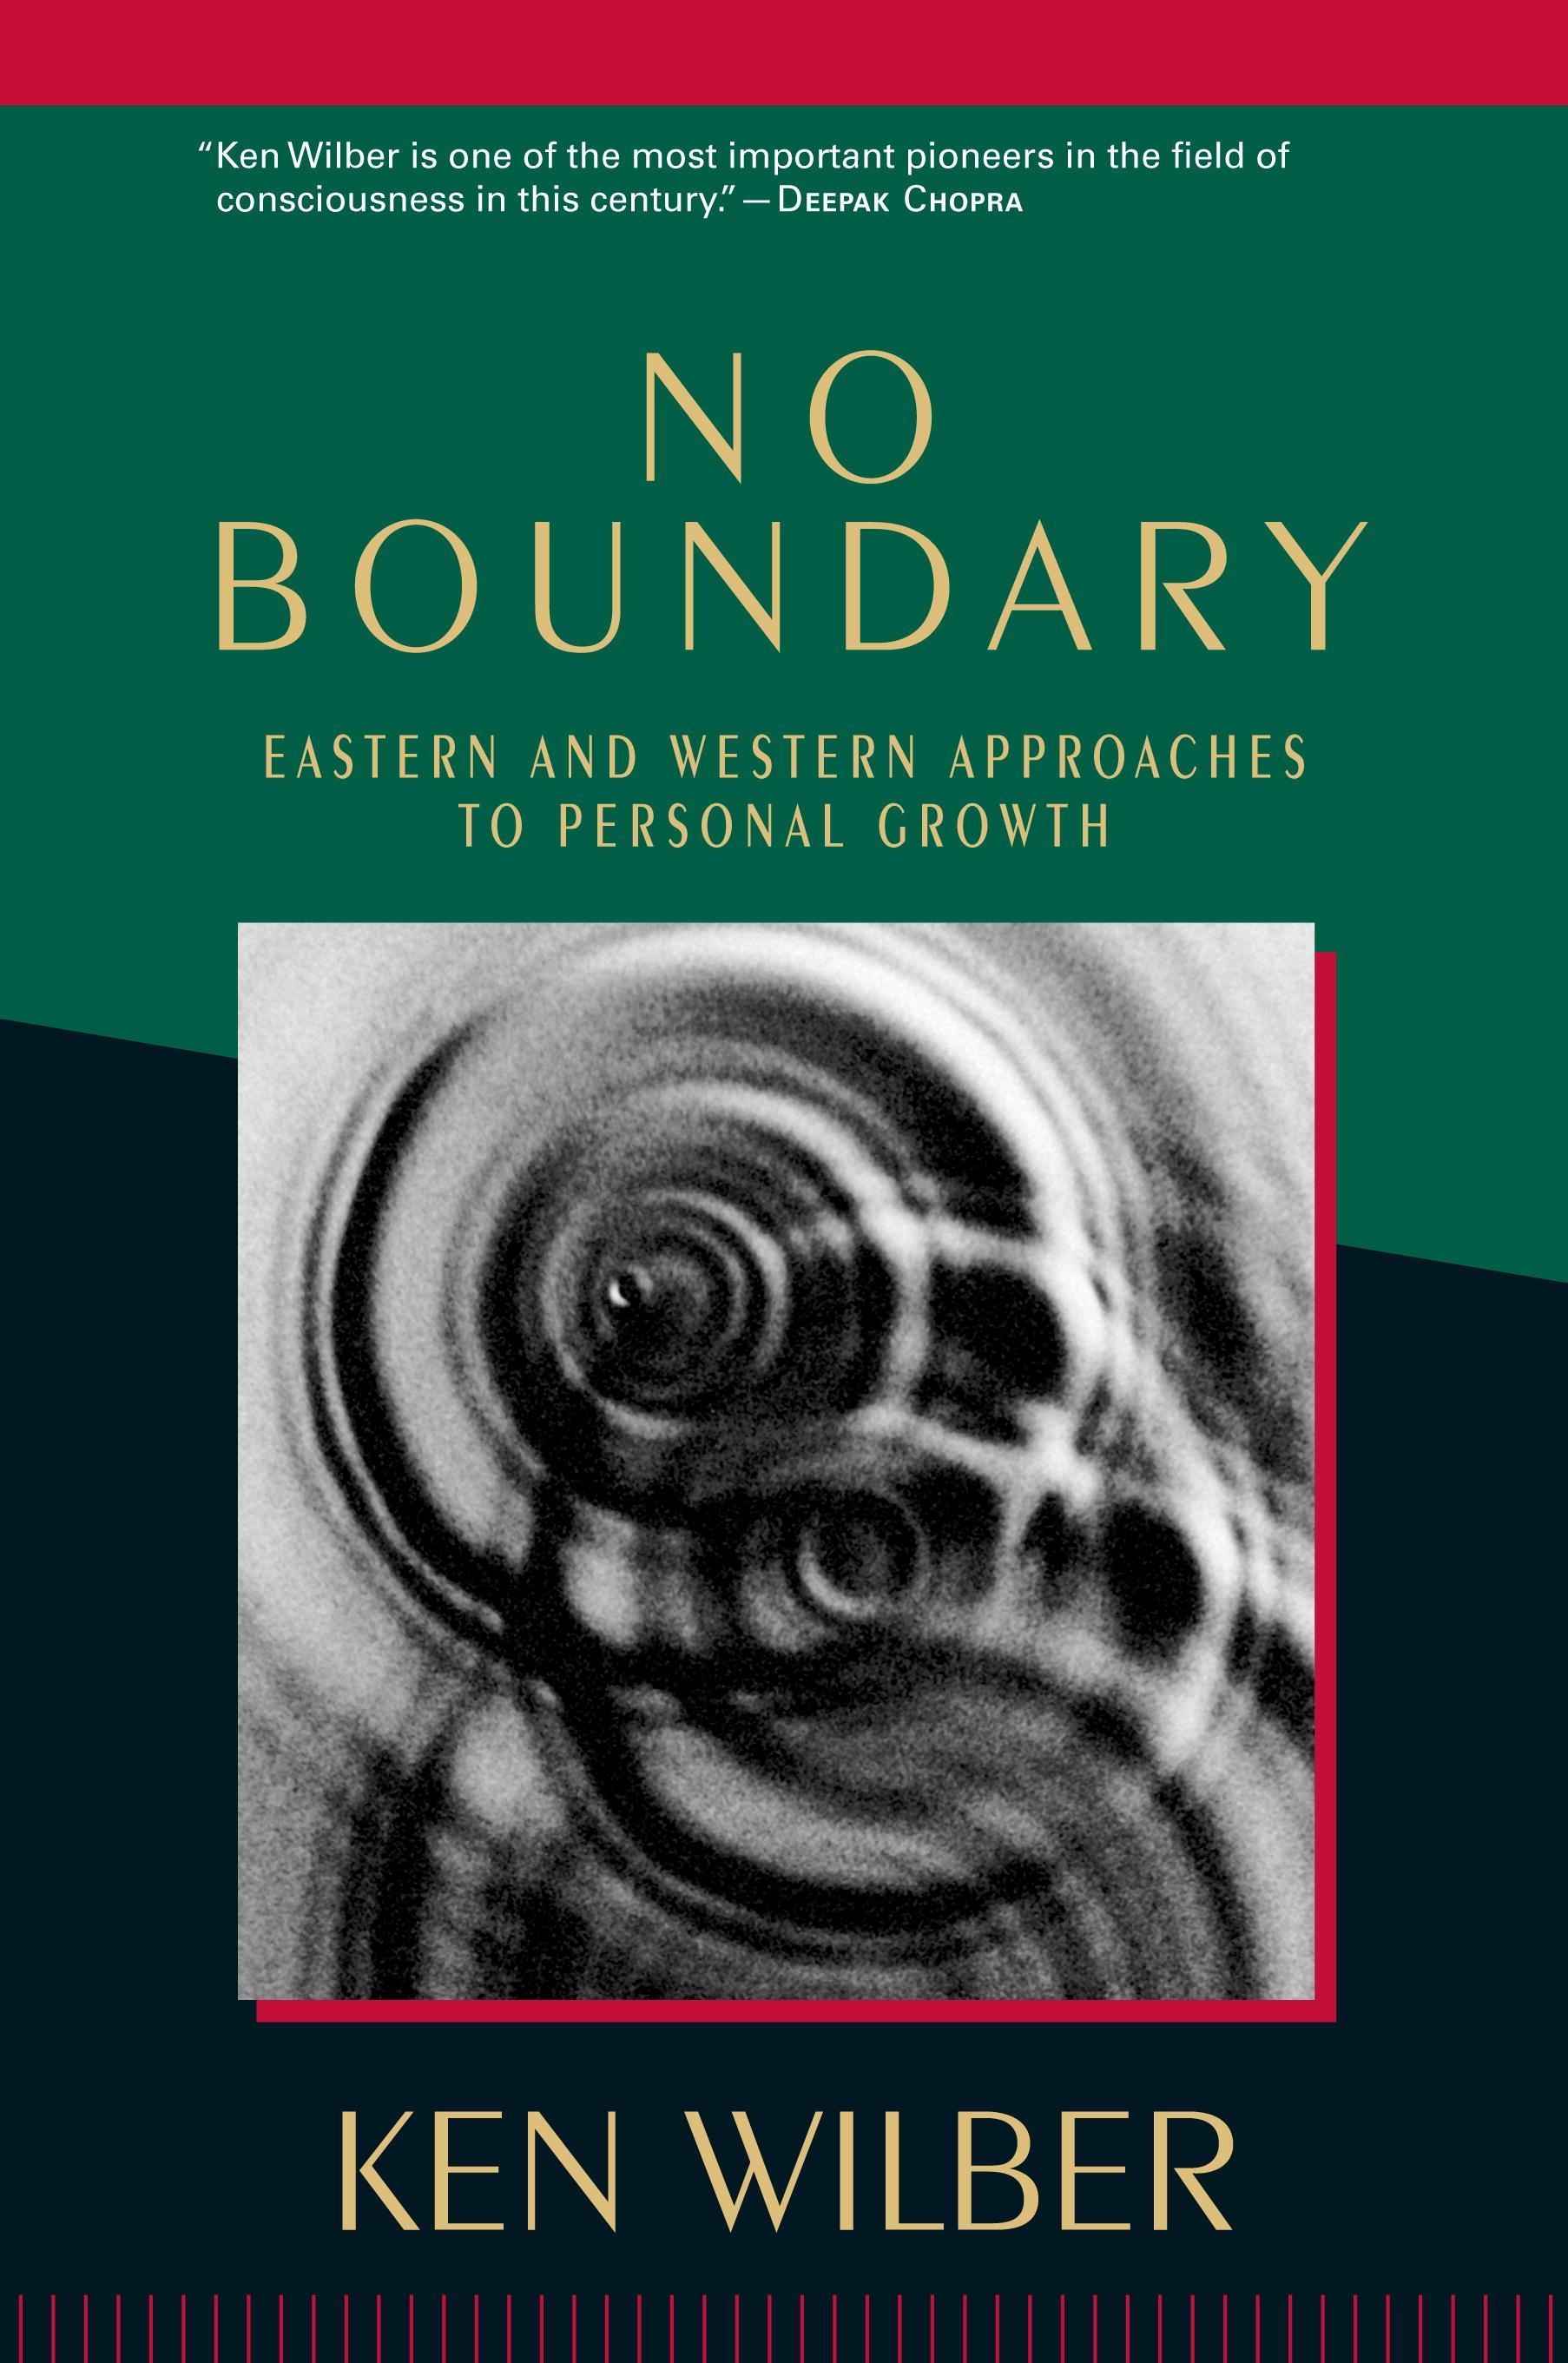 No Boundary by Ken Wilber, ISBN: 9781570627439